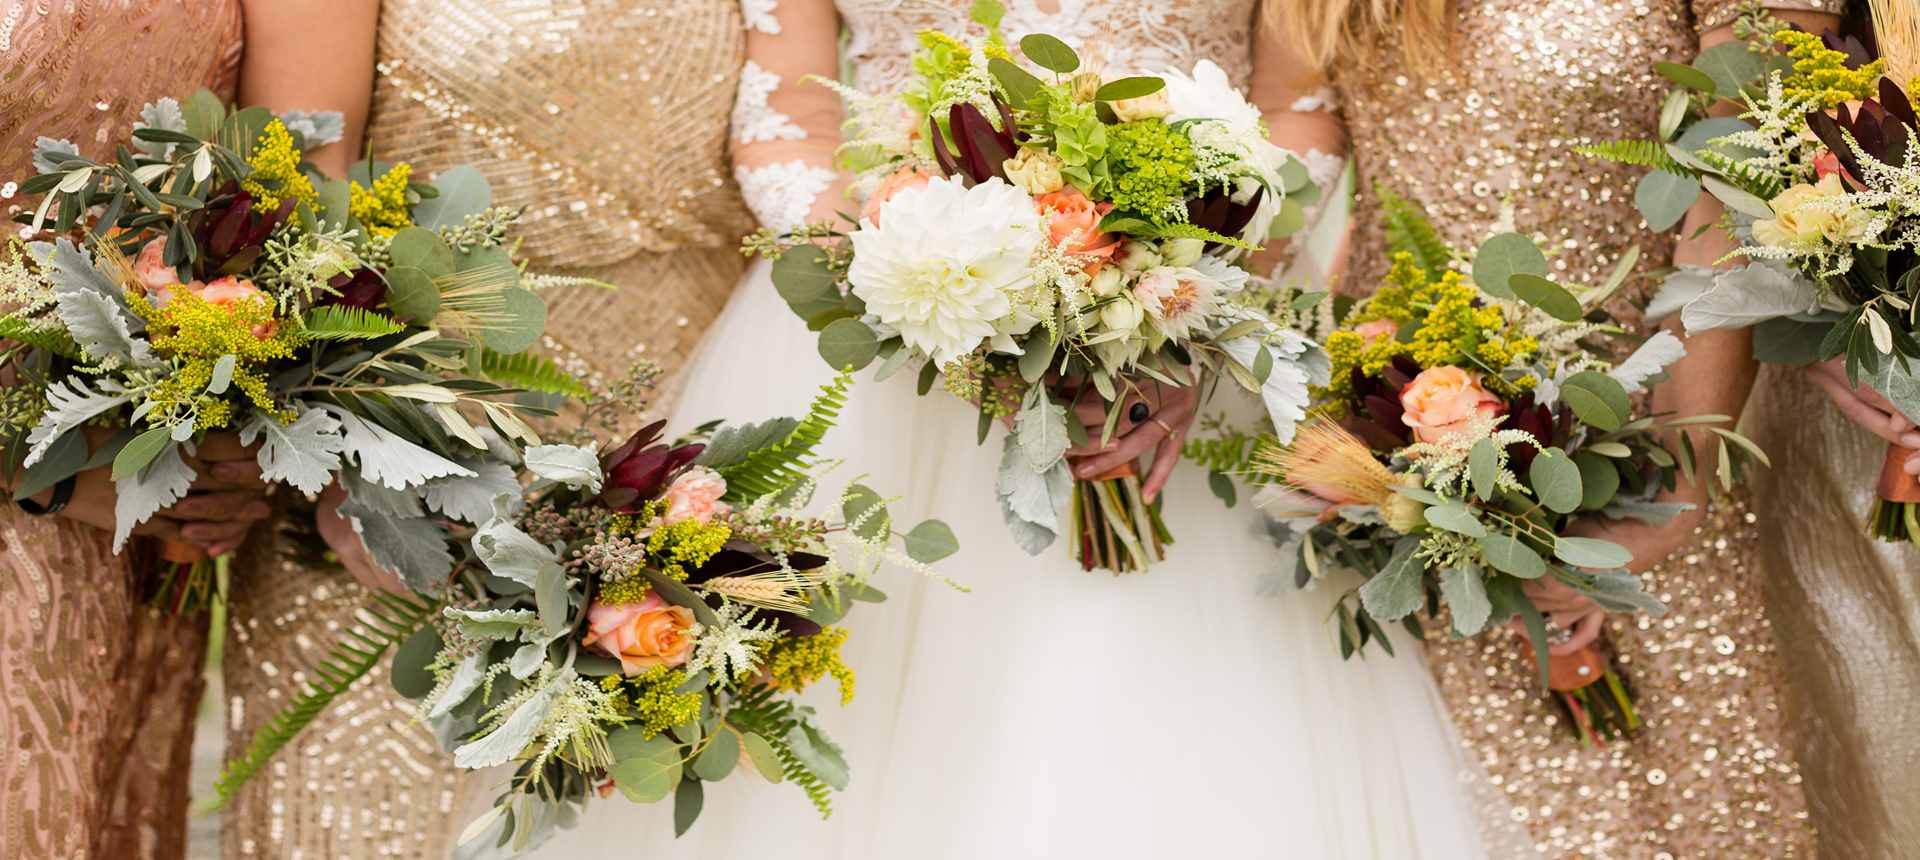 Photo of  bridesmaid's wedding bouquets at The Inn at Grace Farm